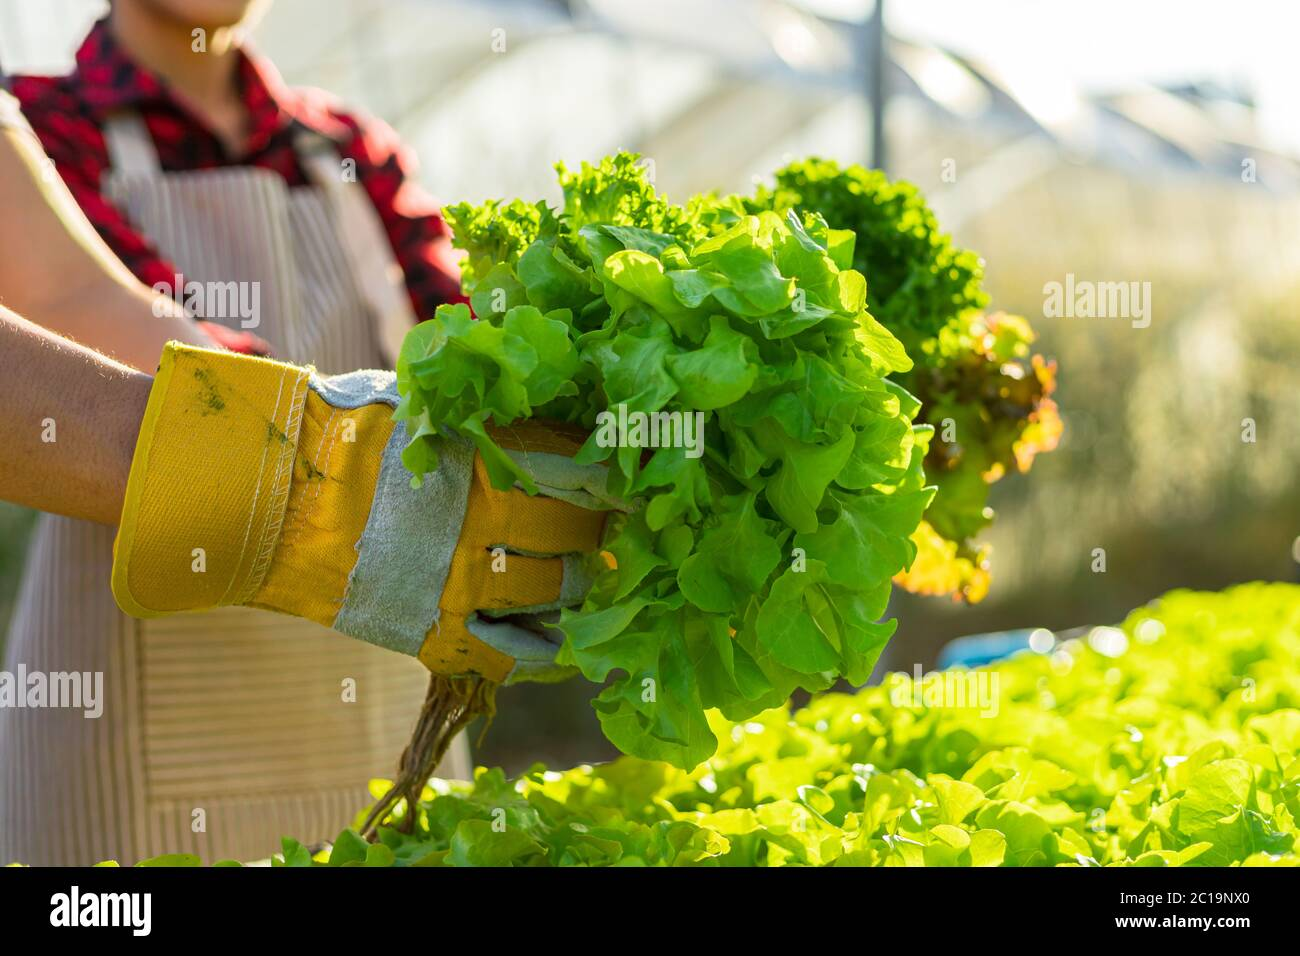 farmer ware agricultural gloves keep vegetable at hydroponic farm and observing growth vegetable meticulously before delivered to the customer. organi Stock Photo